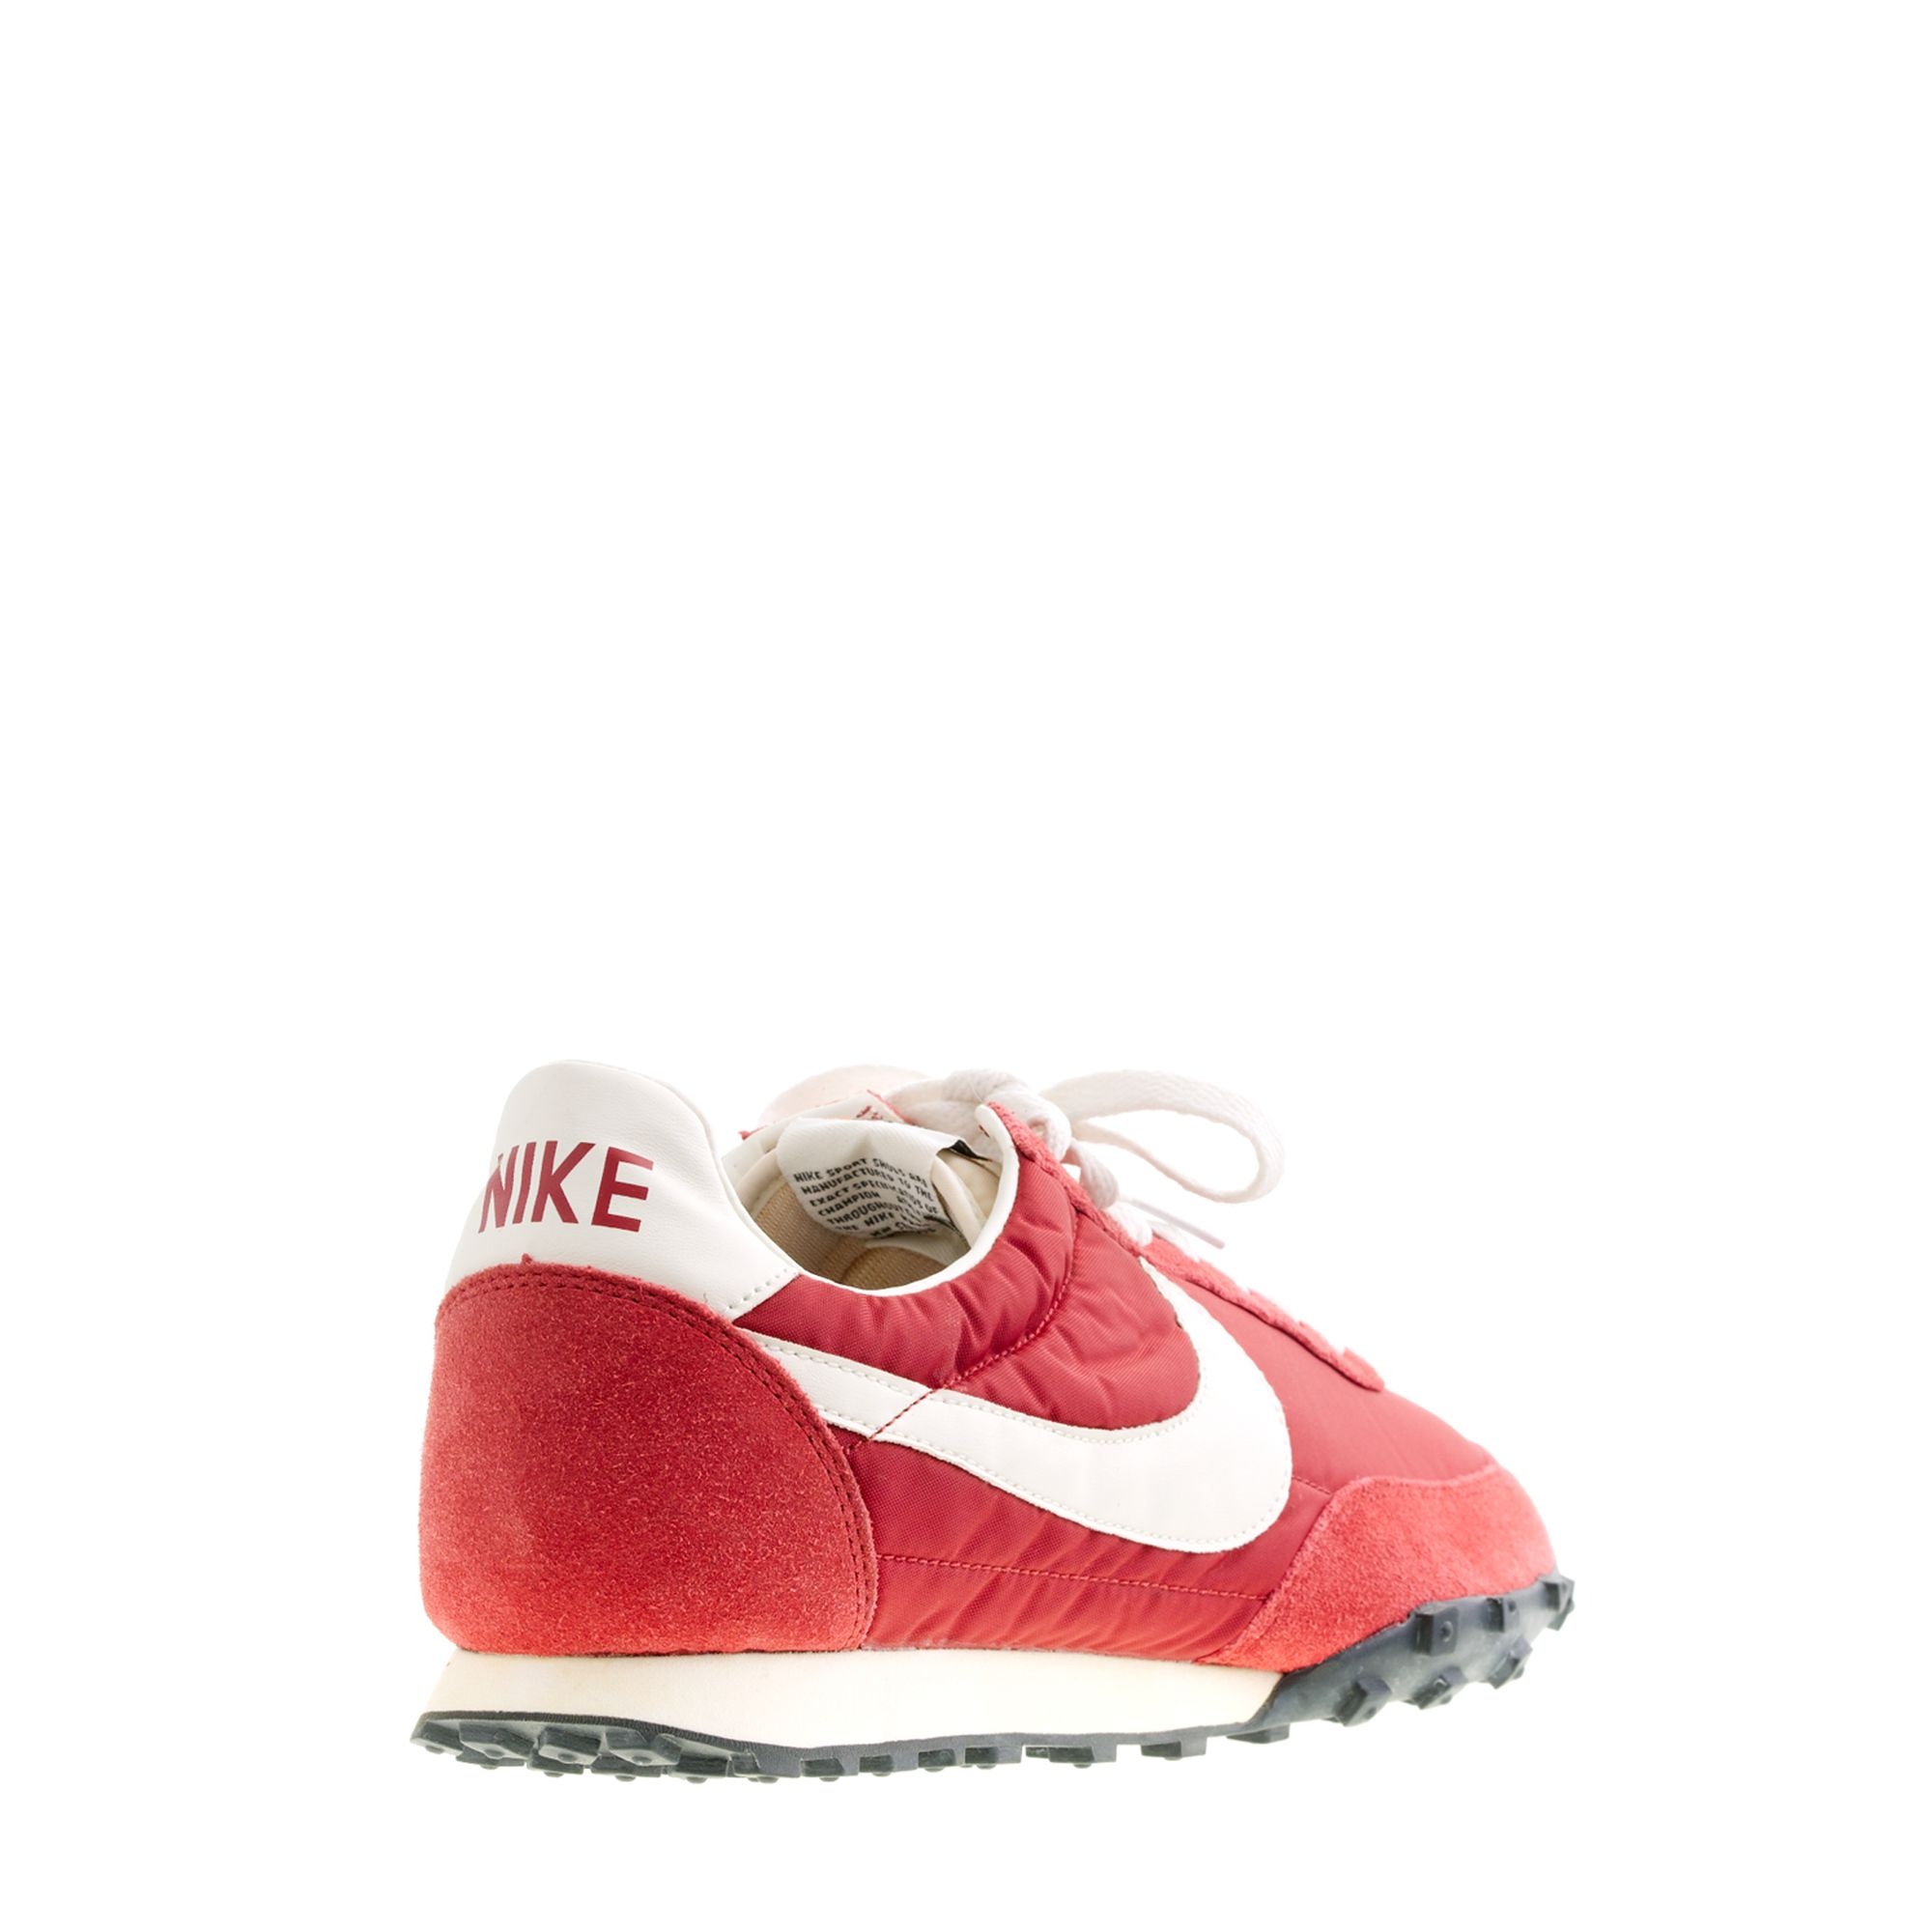 Nike Vintage Shoes Collection